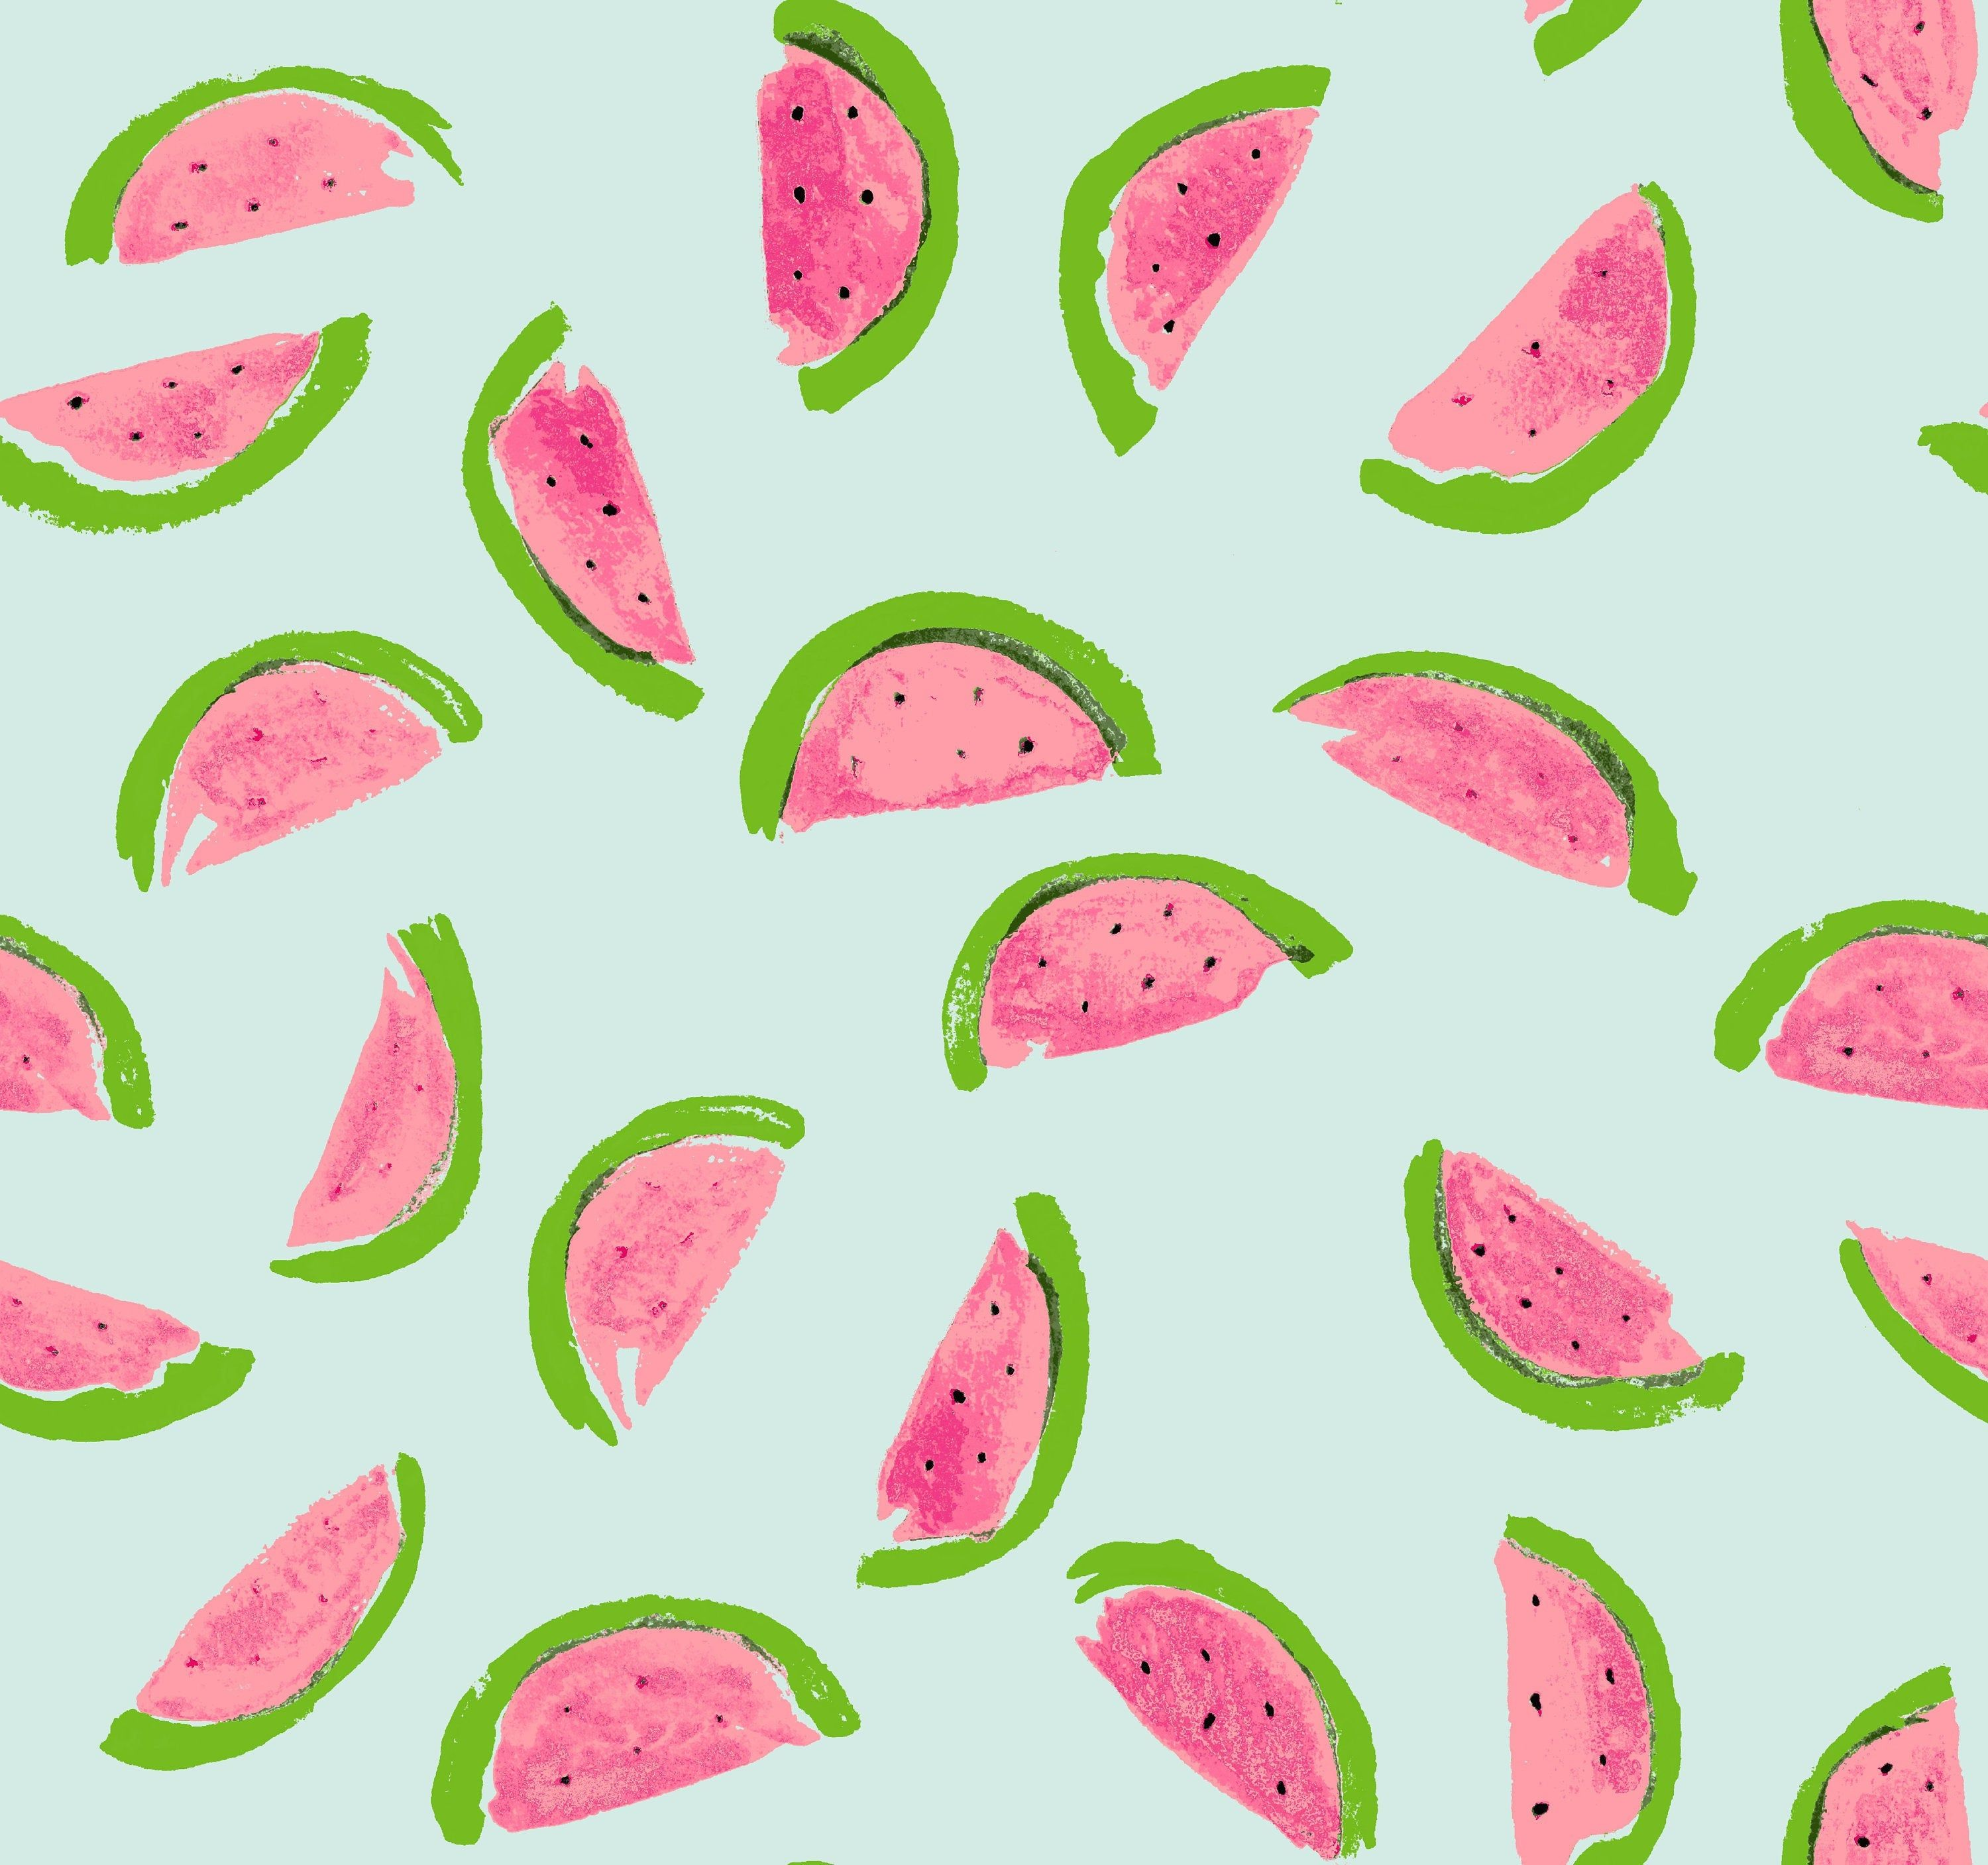 Watermelon Digital Printed Jersey Fabric, Summer Fabric By Yard, Cotton Elastic Soft Comfortable Fabric, Mother Gift, Legging Project, Green